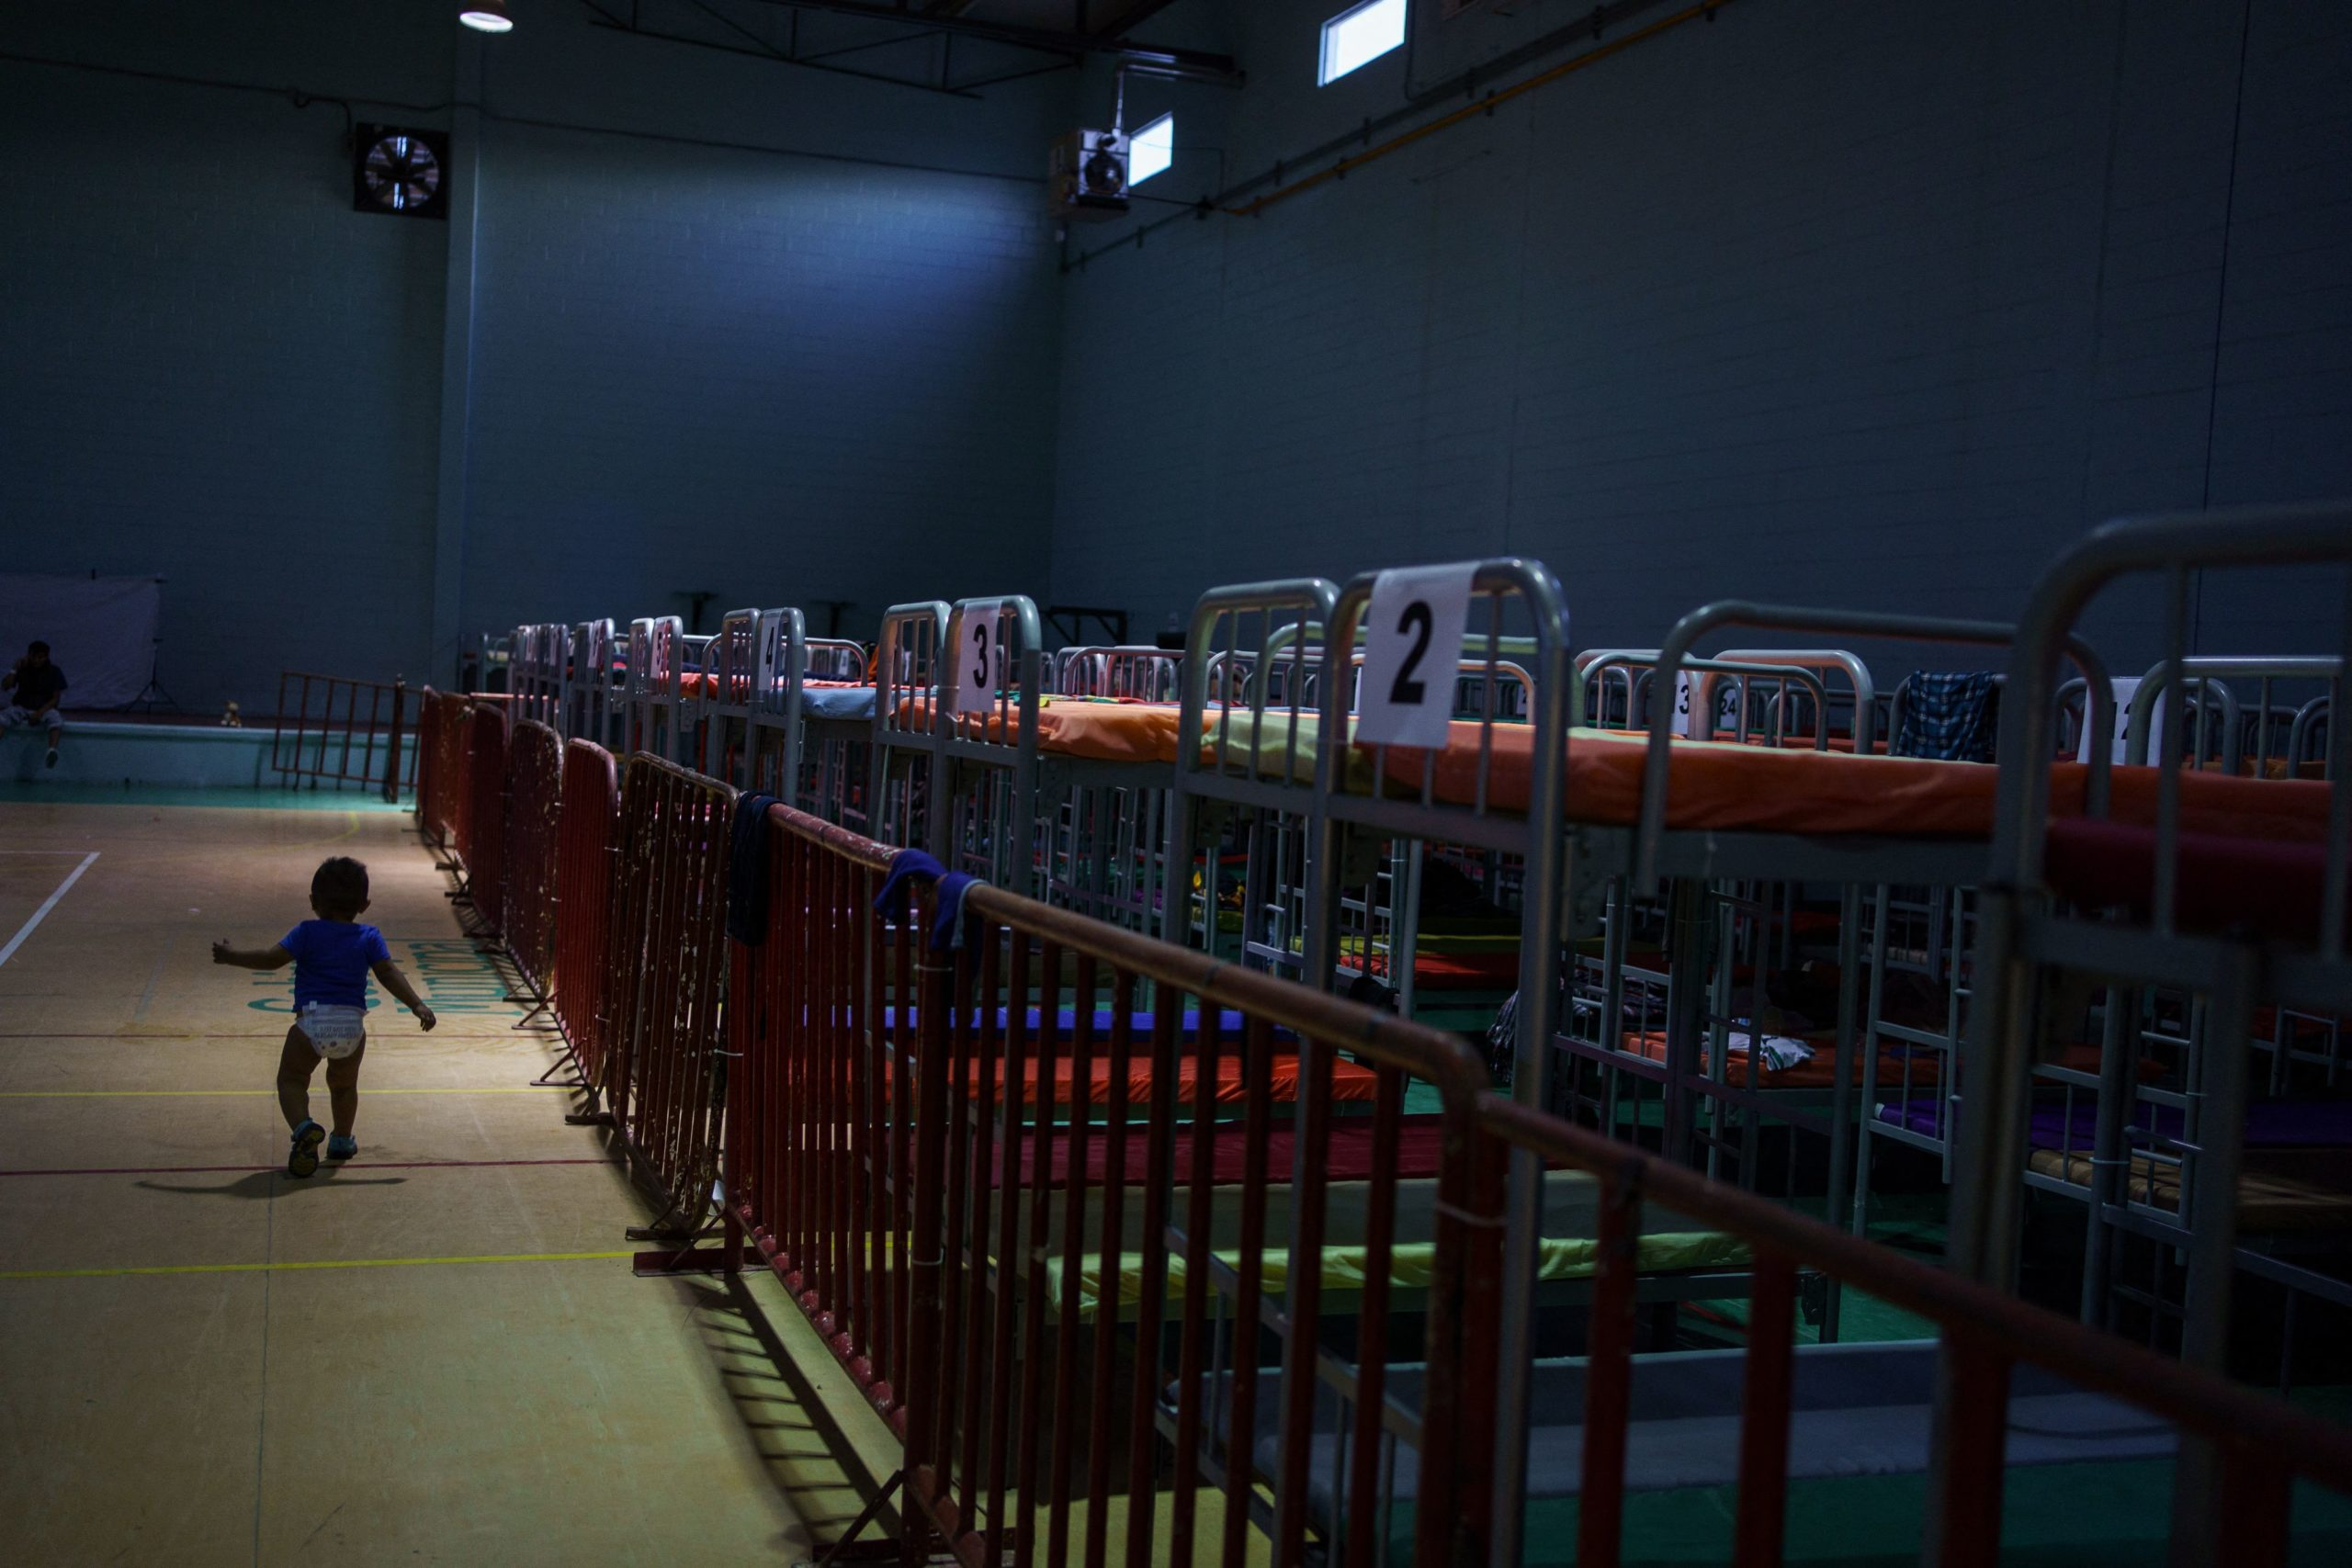 A child walks by bunk beds at Gimnasio Kiki Romero, a gym which has been converted into a makeshift migrant shelter in Ciudad Juarez on April 6, 2021.(Photo by PAUL RATJE/AFP via Getty Images)